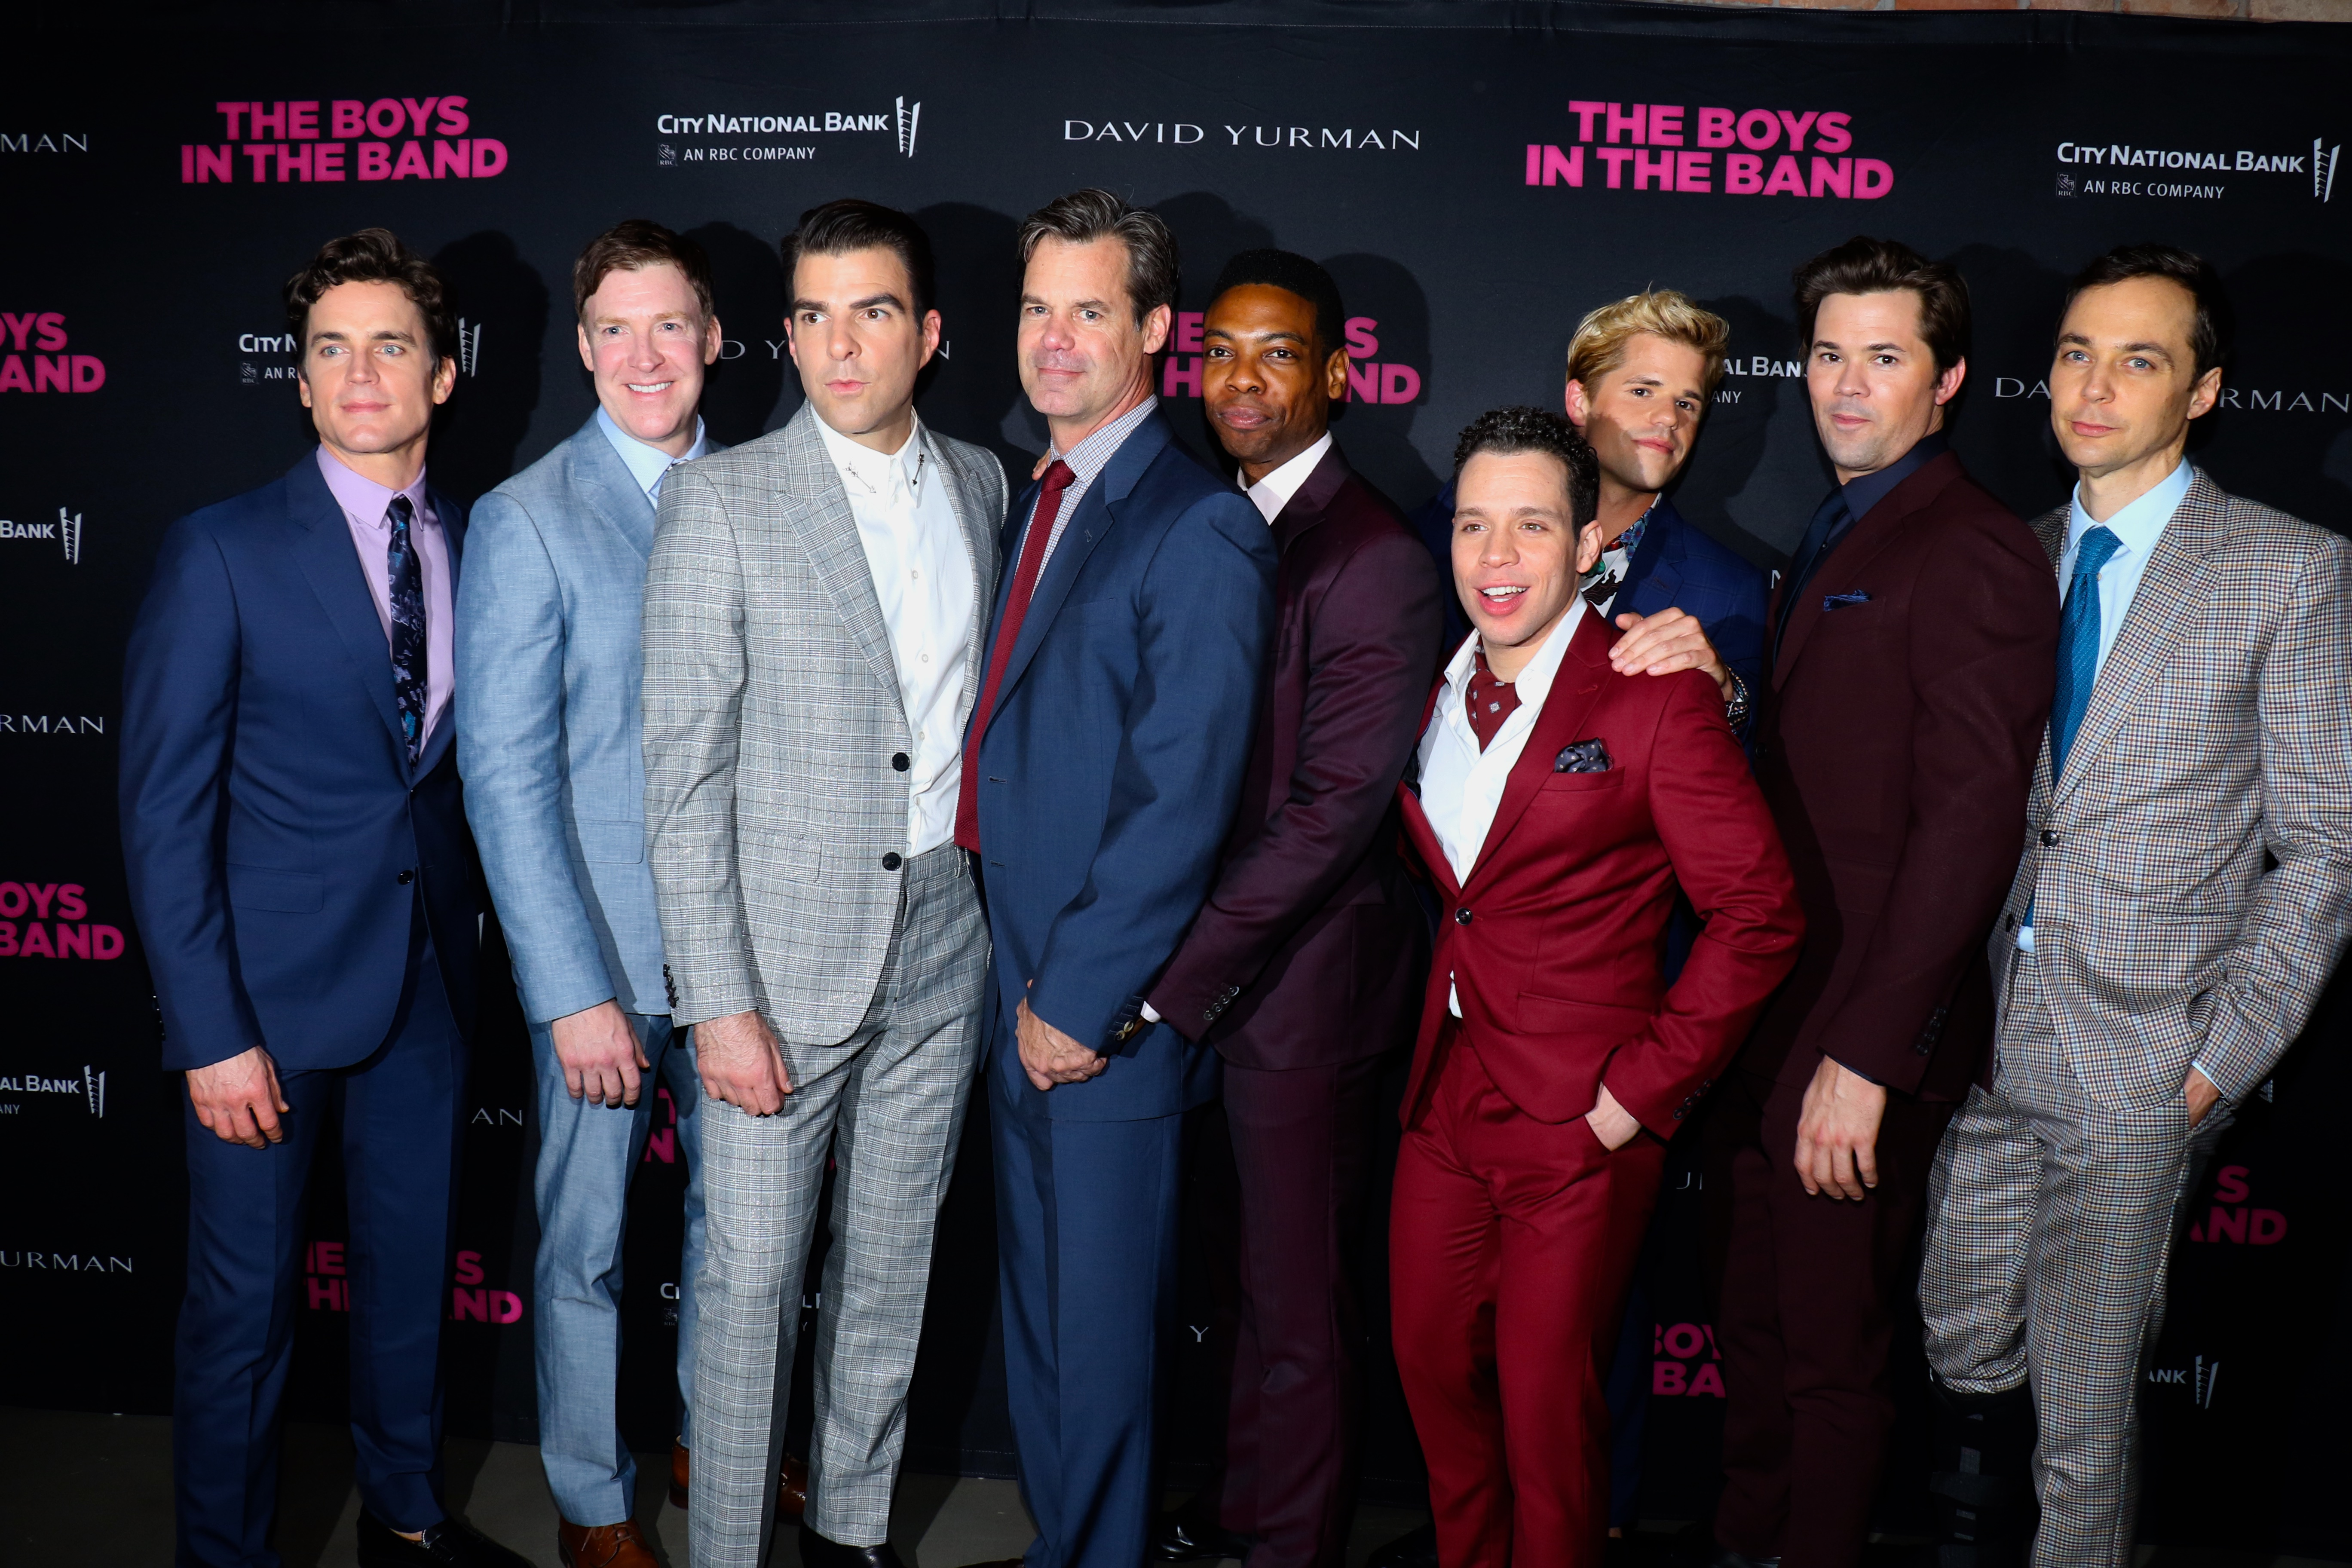 Ryan Murphy to Bring Controversial Gay Play 'The Boys in the Band' to Netflix